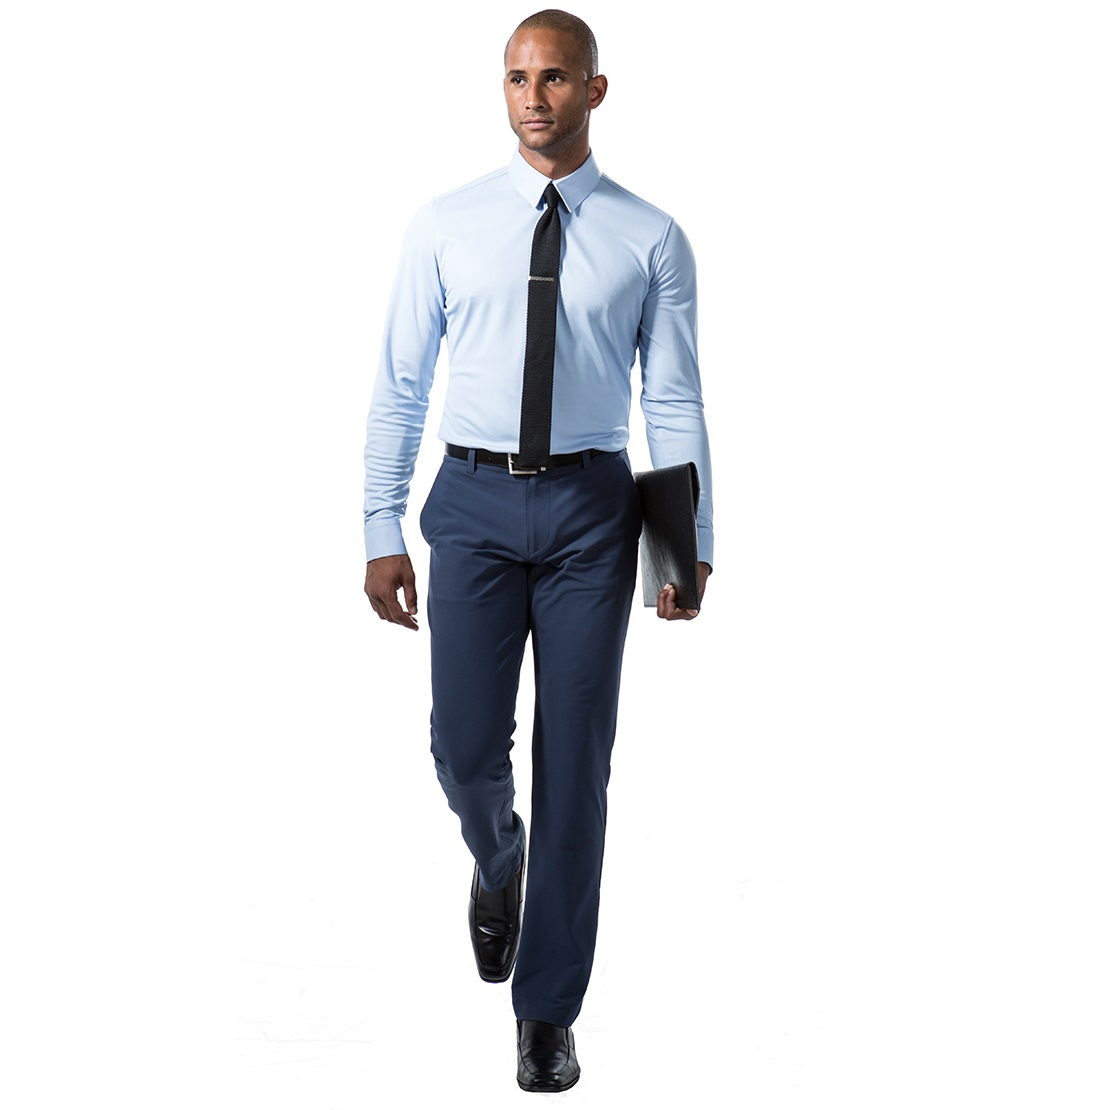 Office Dress Code For Men The key to dressing for the office in the modern day is all about maintaining a smart, streamlined look – even when going casual. Keep trousers and jean cuts slim fitted.